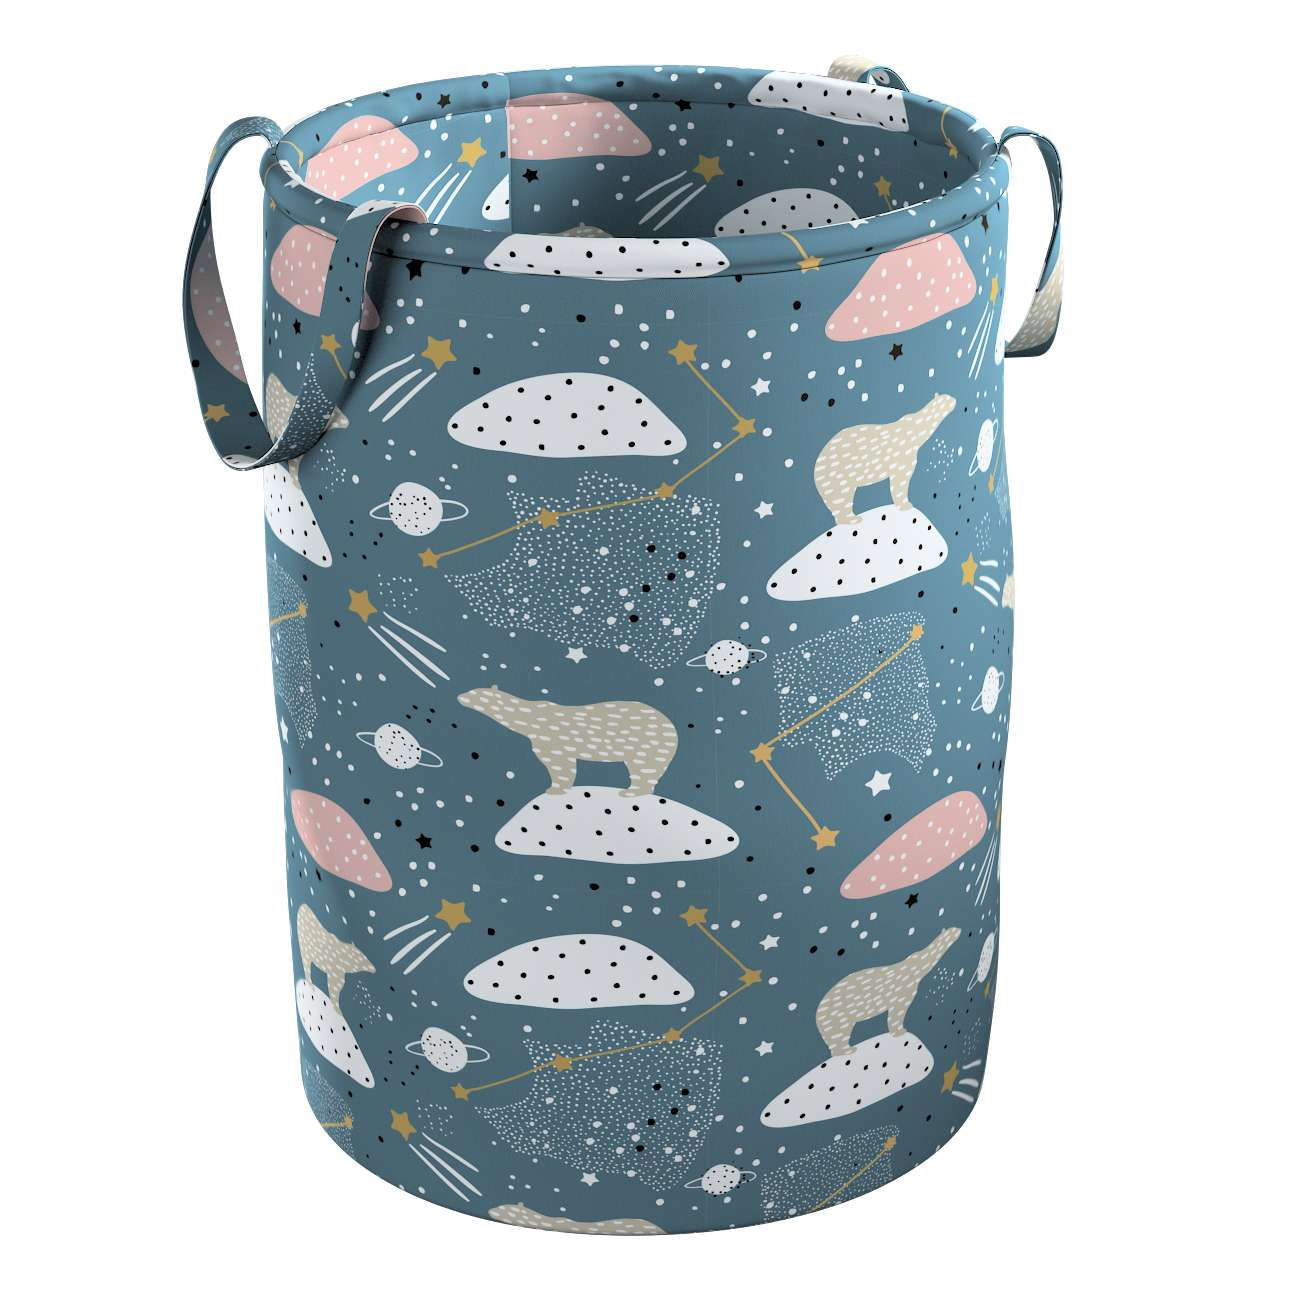 Tobi toy basket in collection Magic Collection, fabric: 500-45